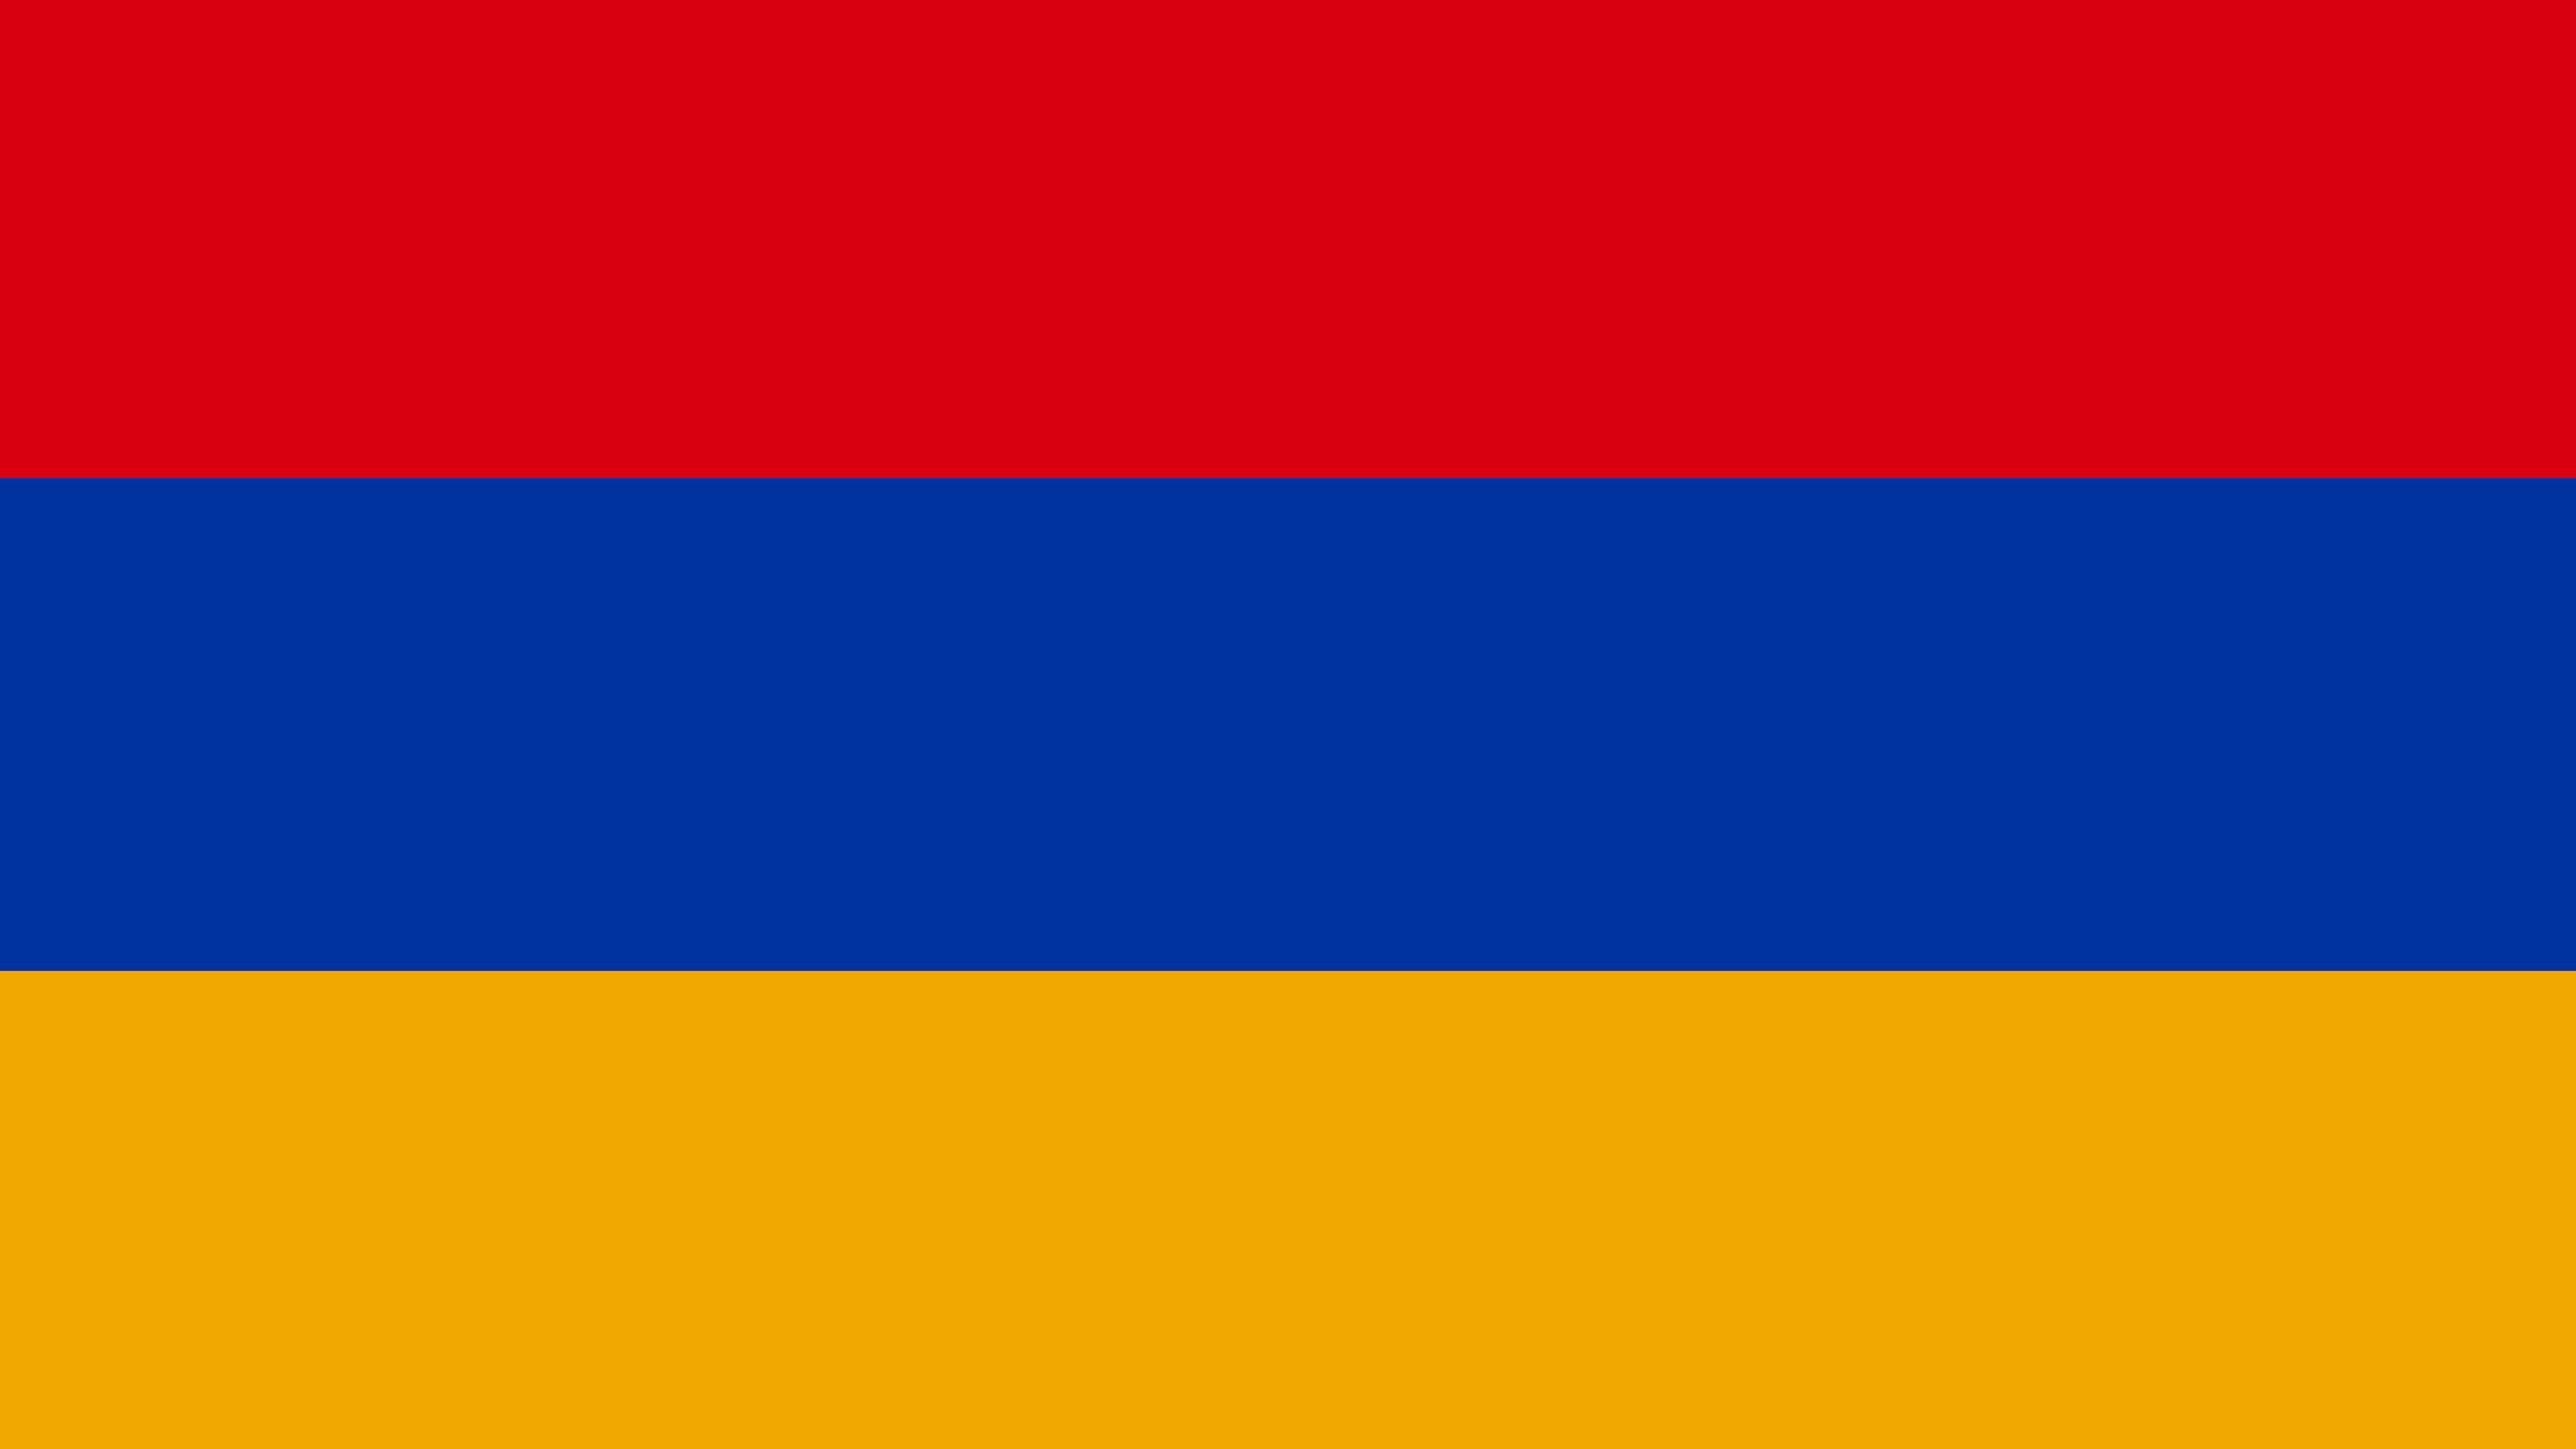 Armenia Flag UHD 4K Wallpaper Pixelz 3840x2160